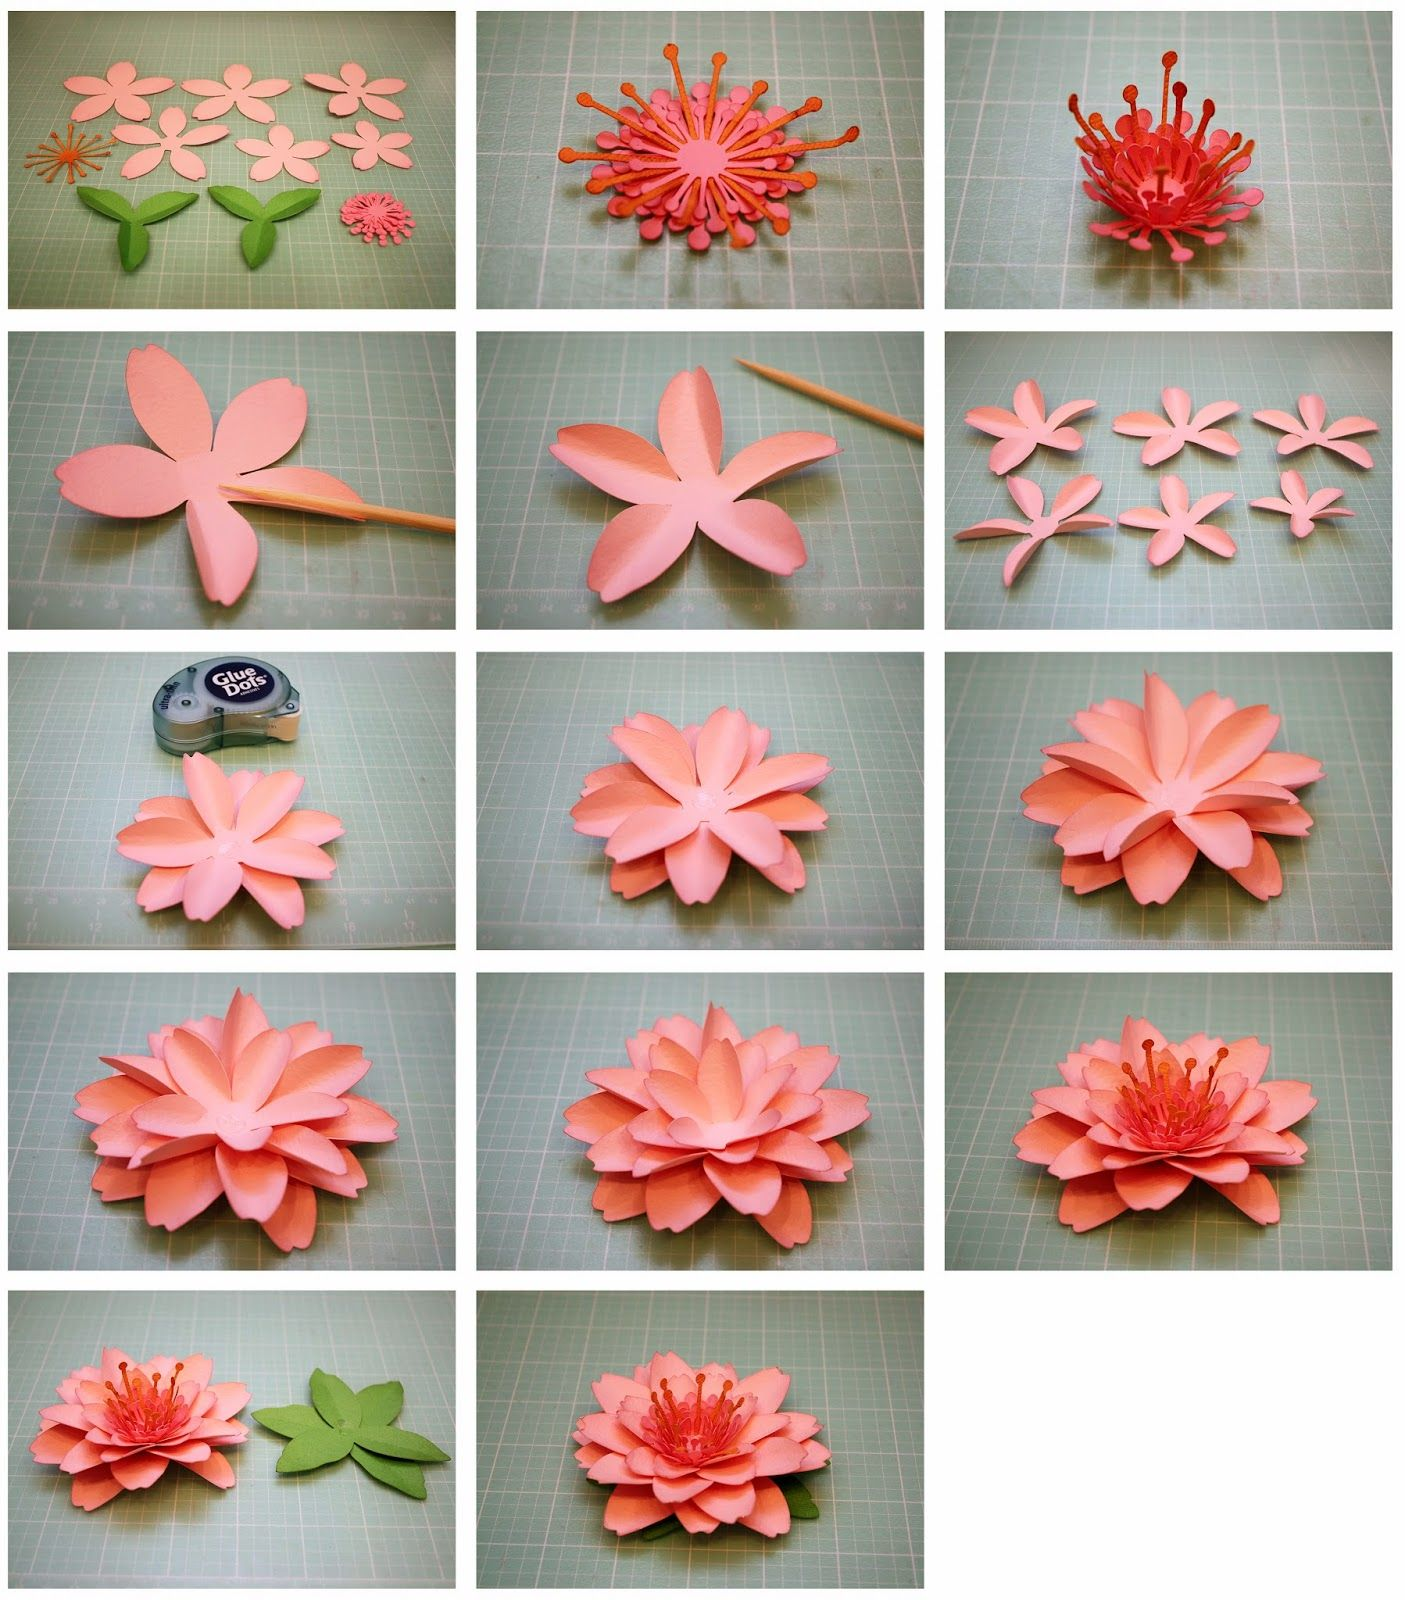 Bits Of Paper Daffodil And Cherry Blossom 3d Paper Flowers Cricut